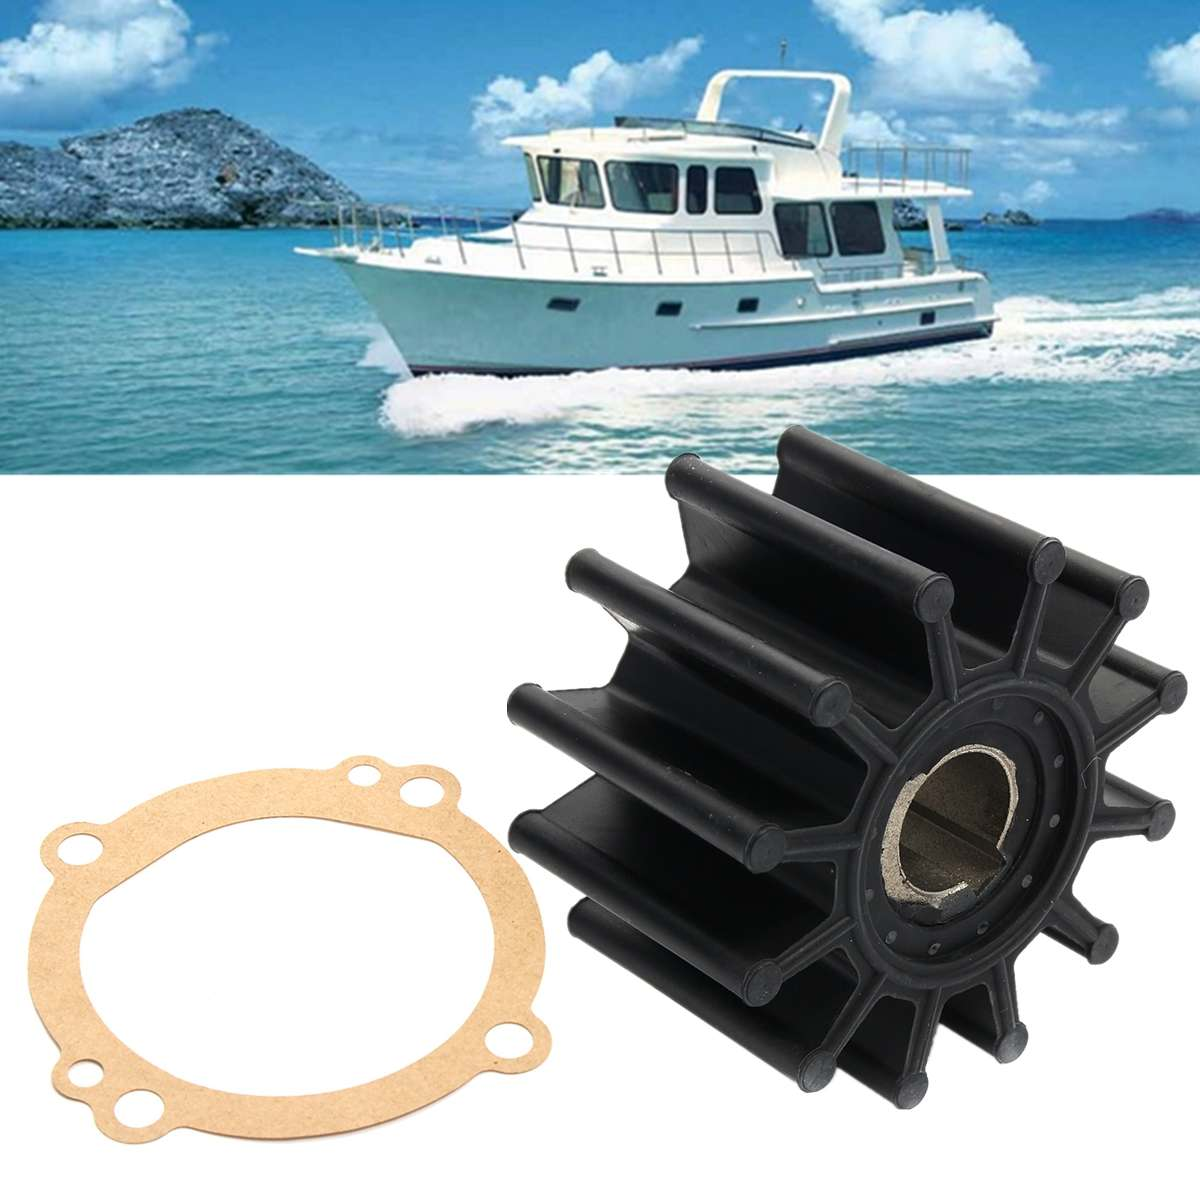 Water Pump Impeller Repair Kit For Sherwood S11095G S11095-G S-11095G 10615K Boat Parts Accessories